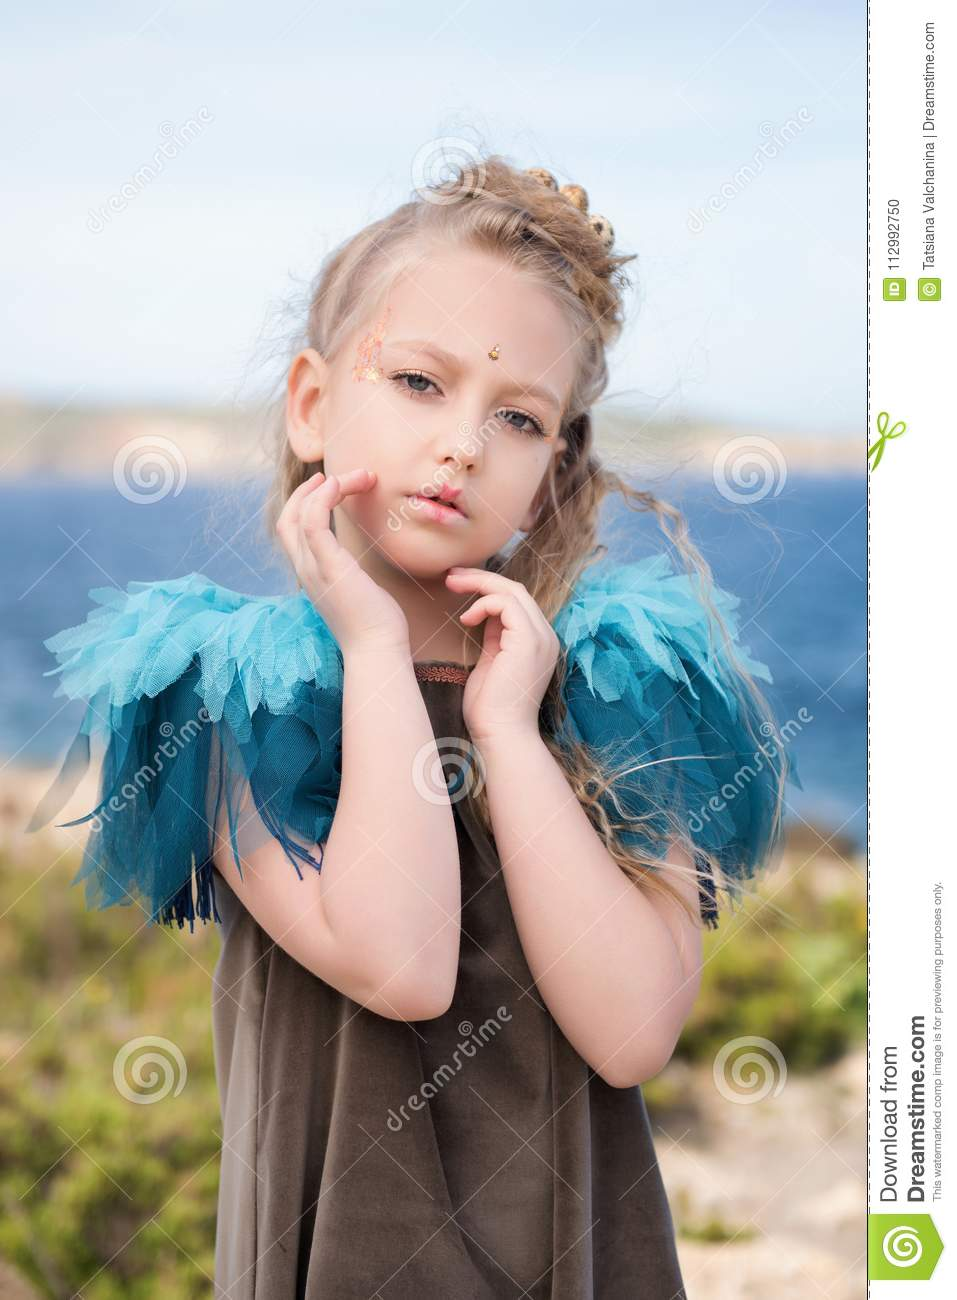 Young pretty girl model posing on the beach with a birdie costume